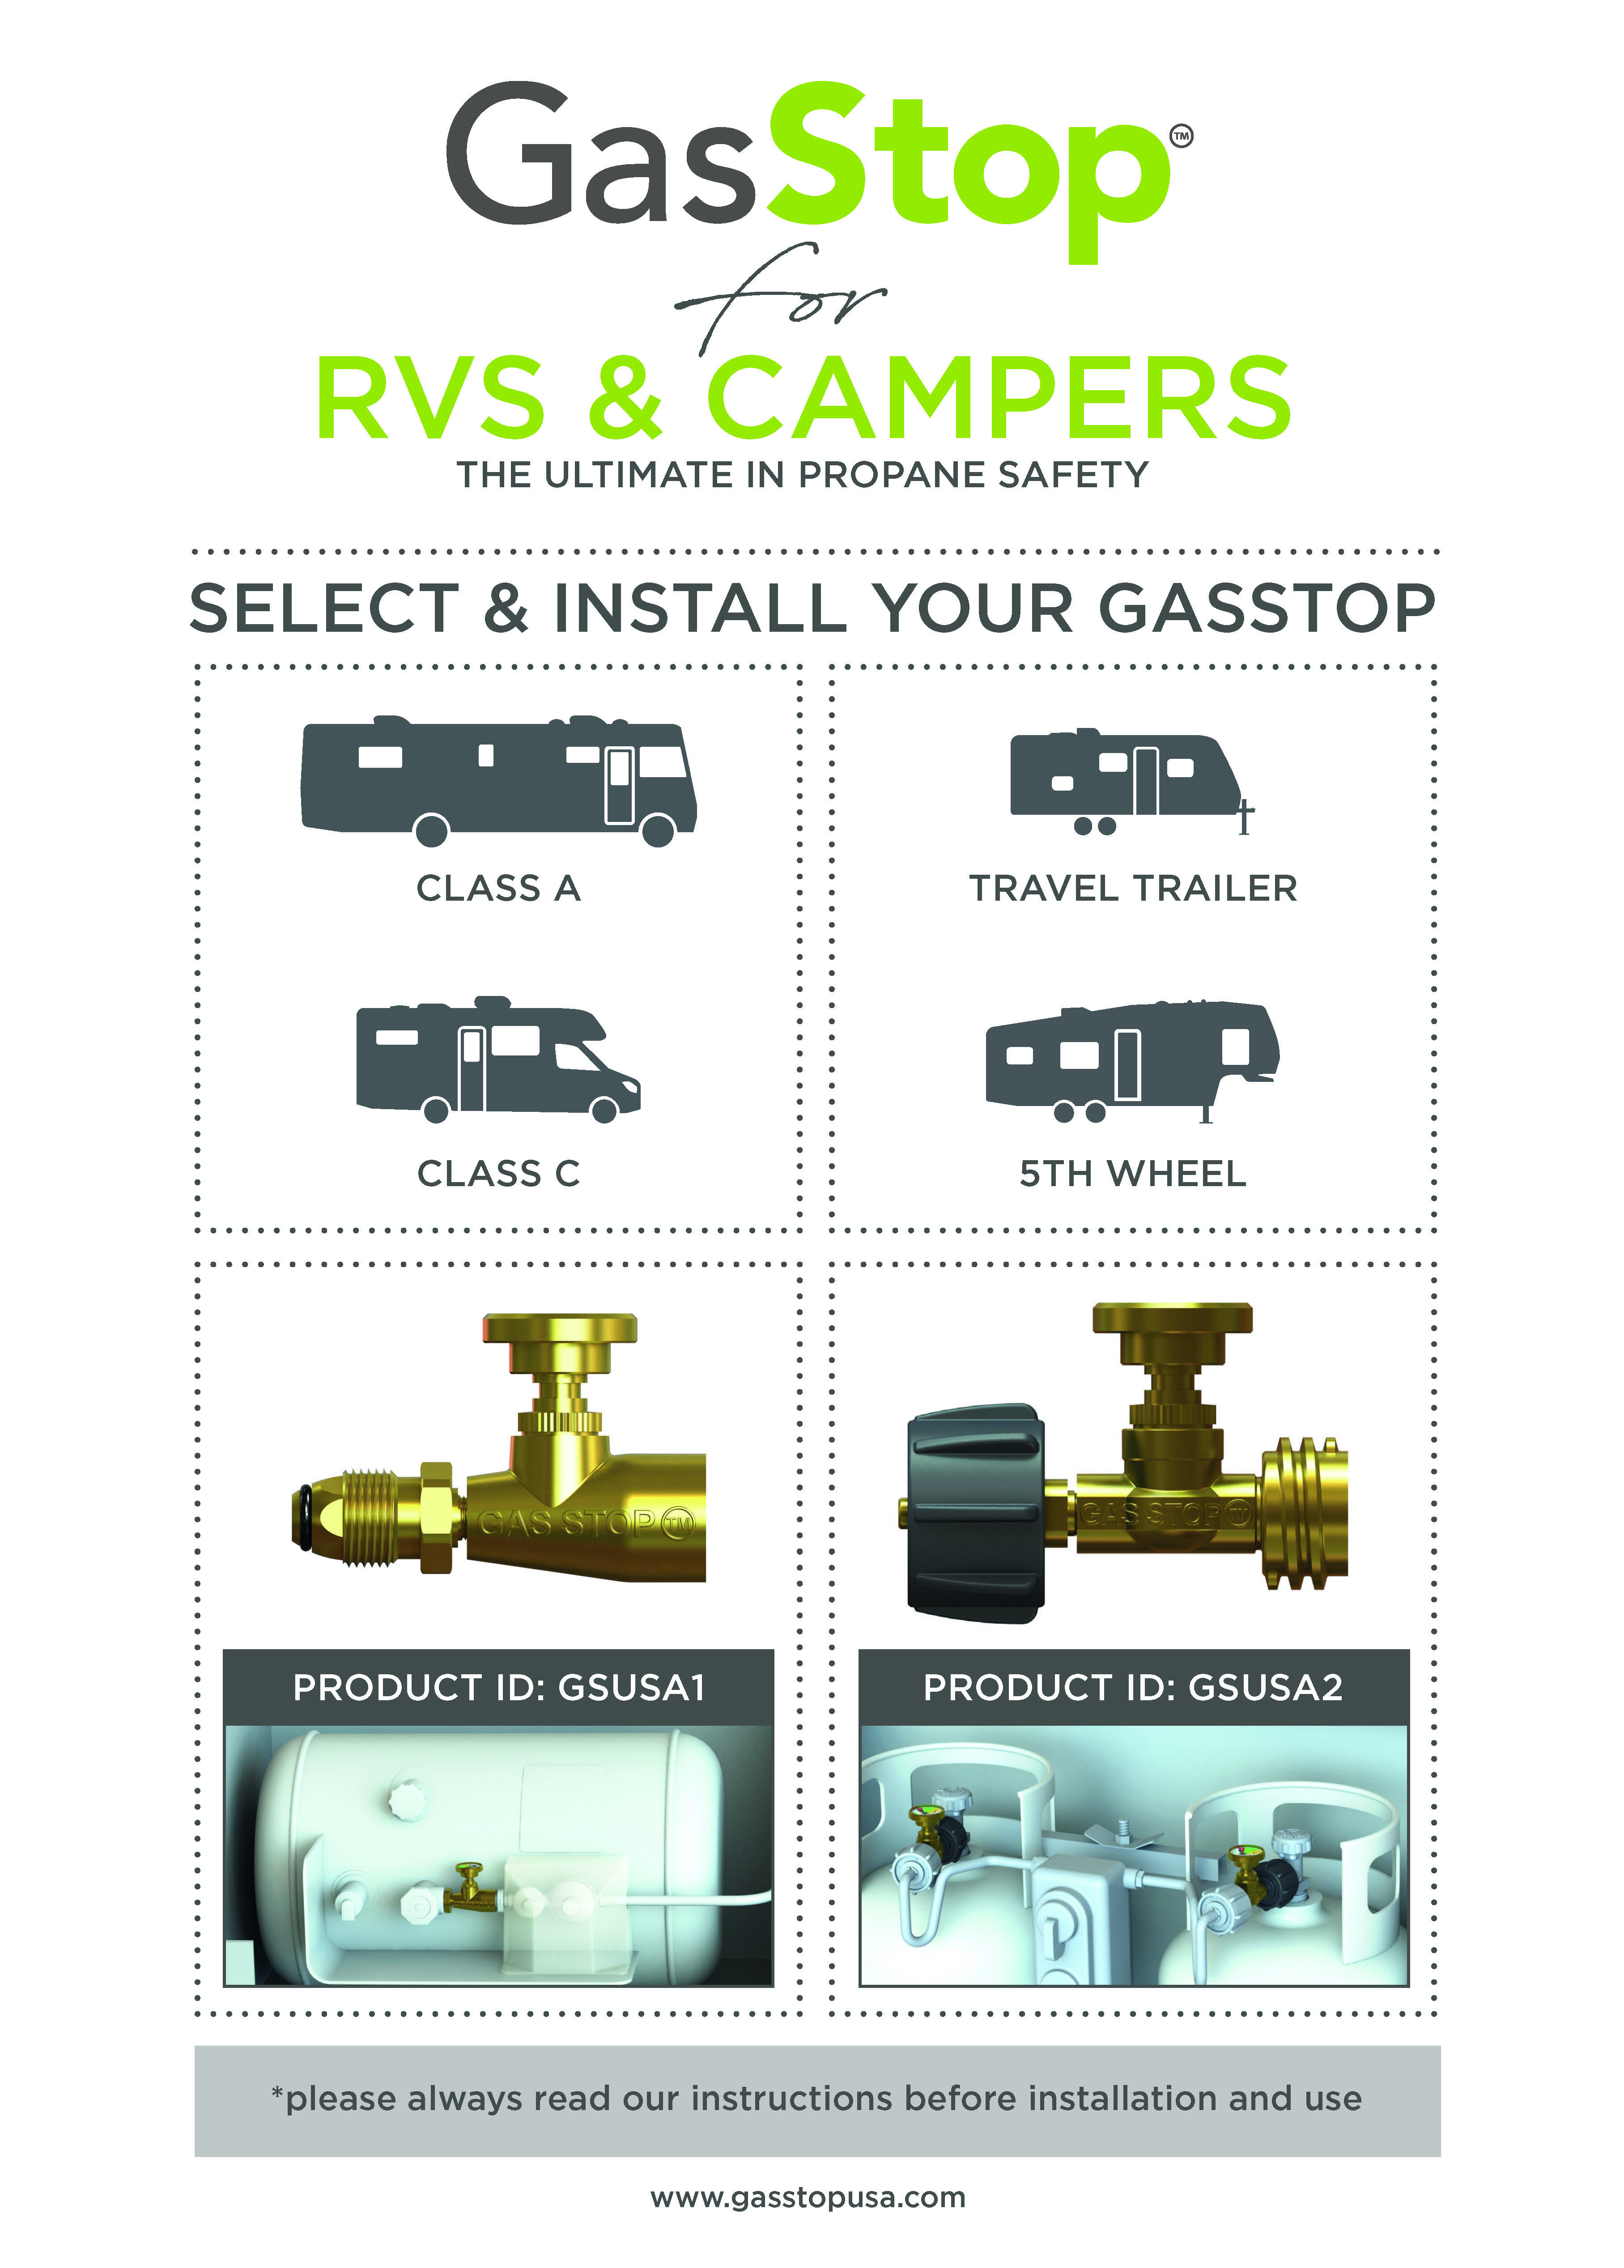 choose-the-right-gasstop-for-your-rv.jpg